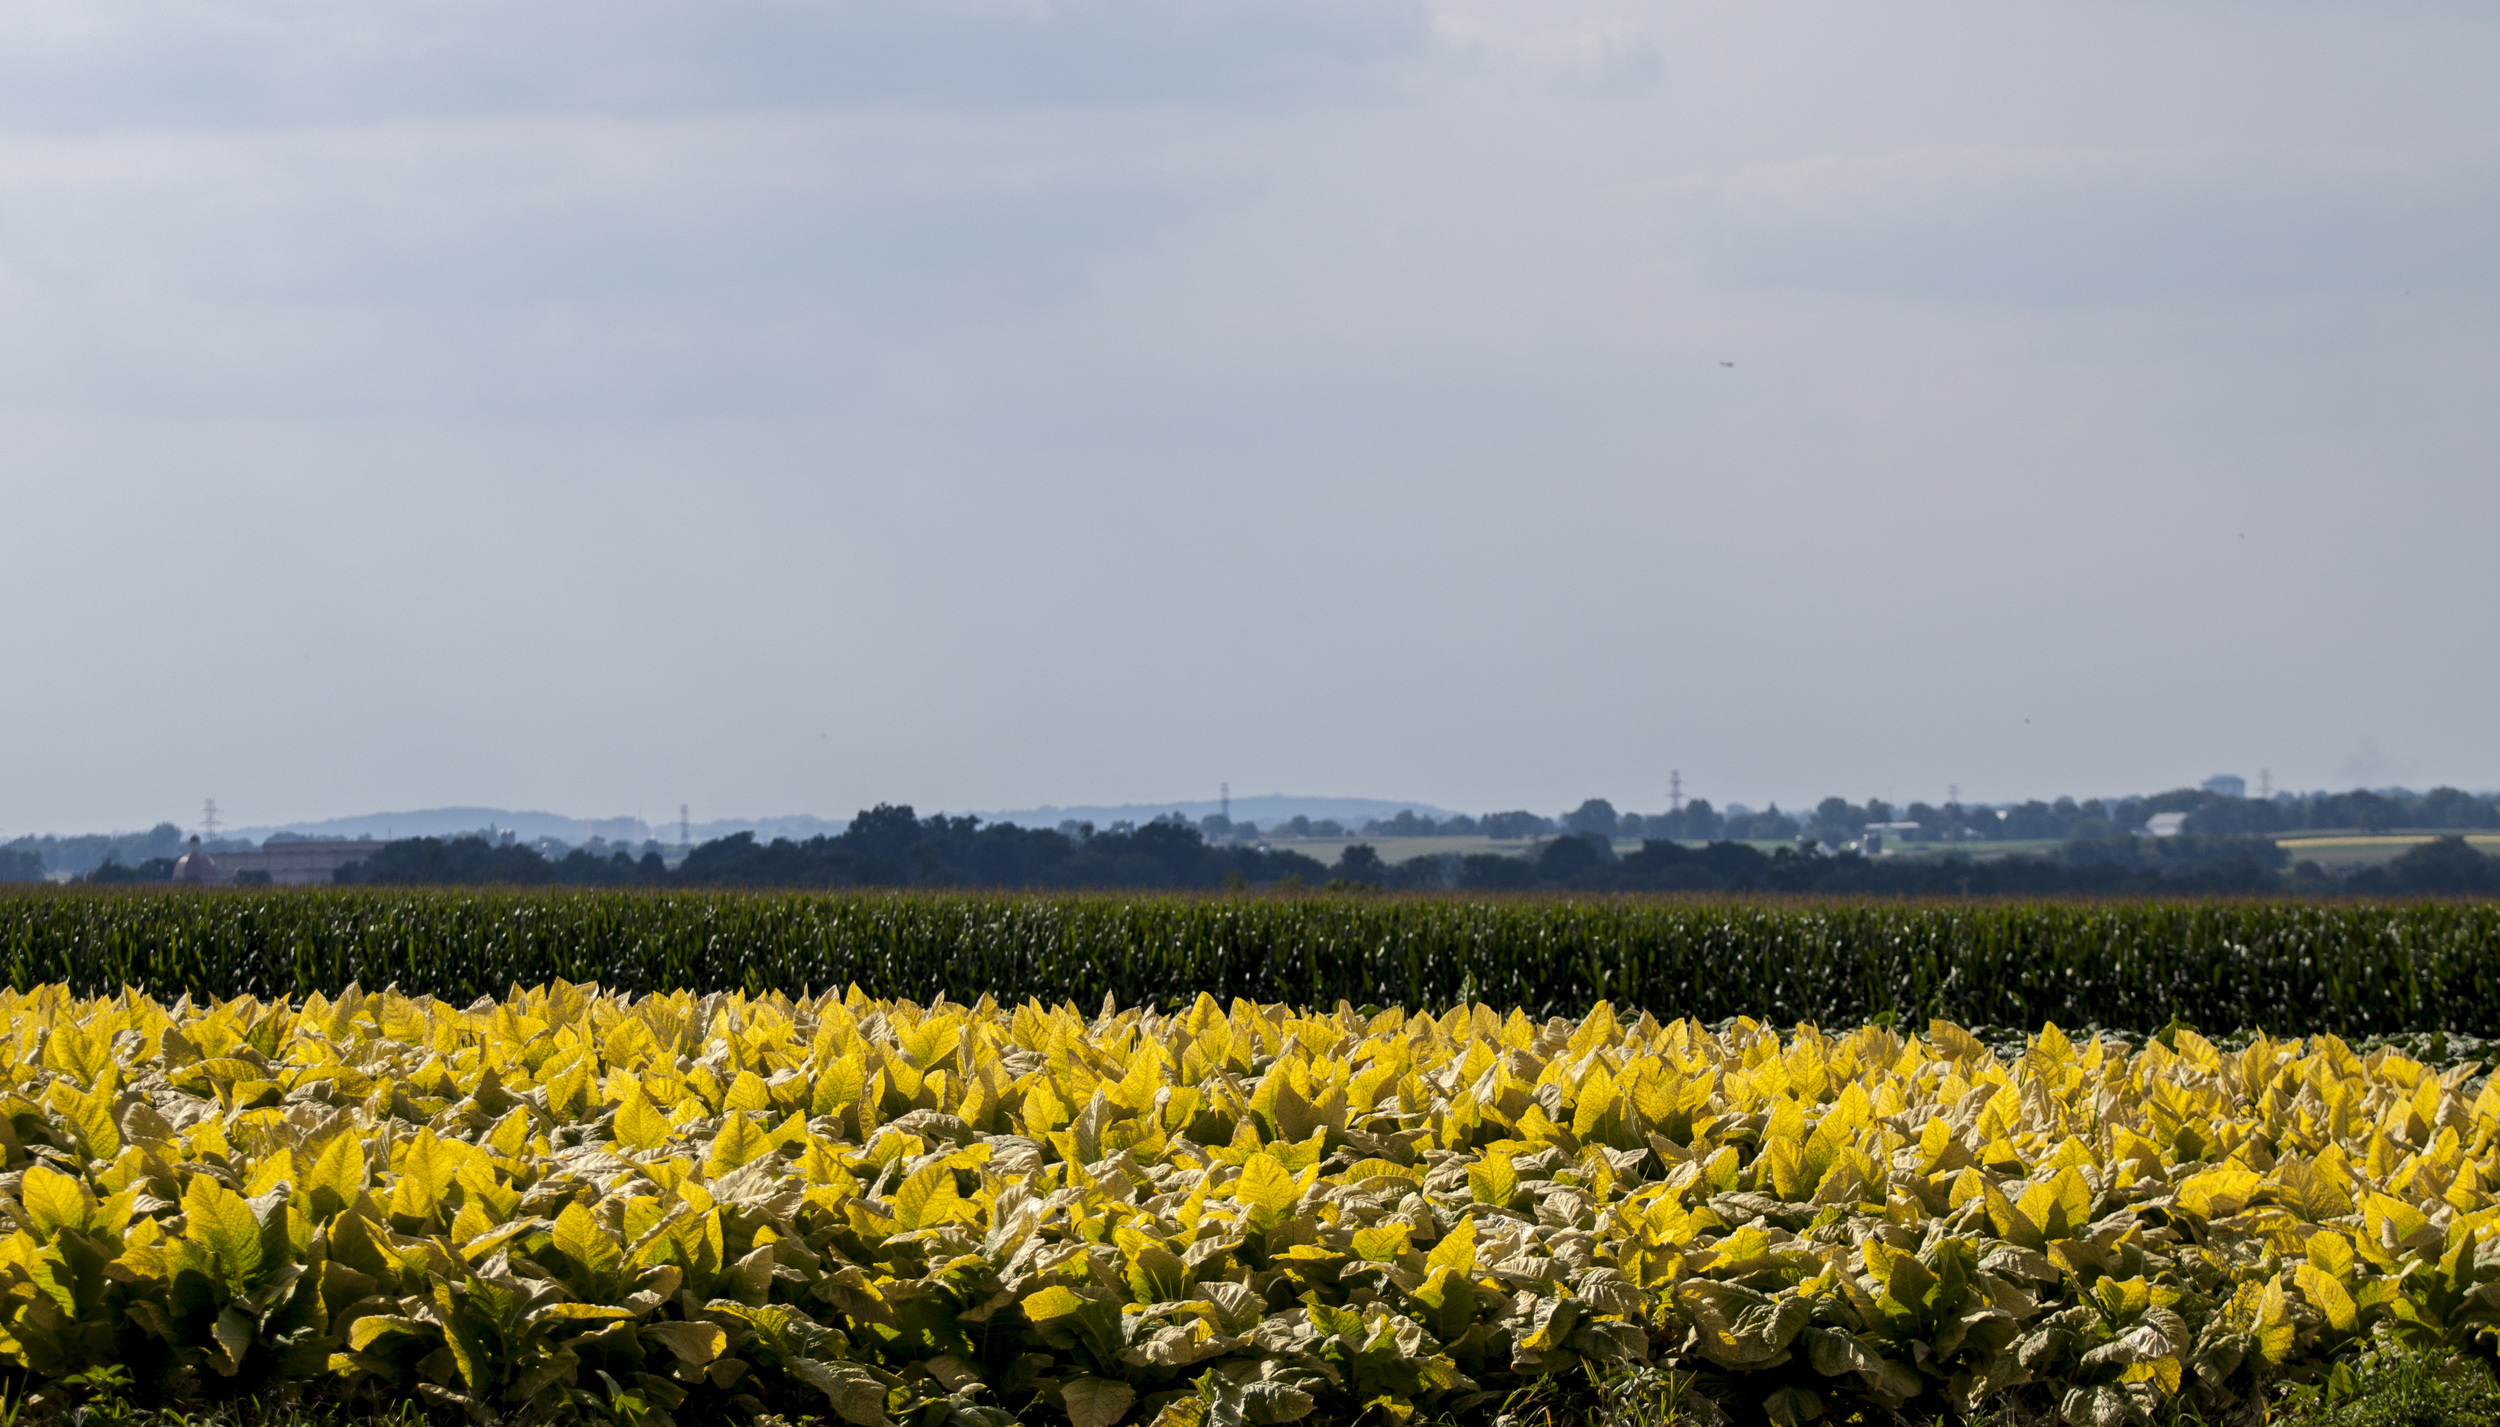 fields of gold. or in this case tobacco.